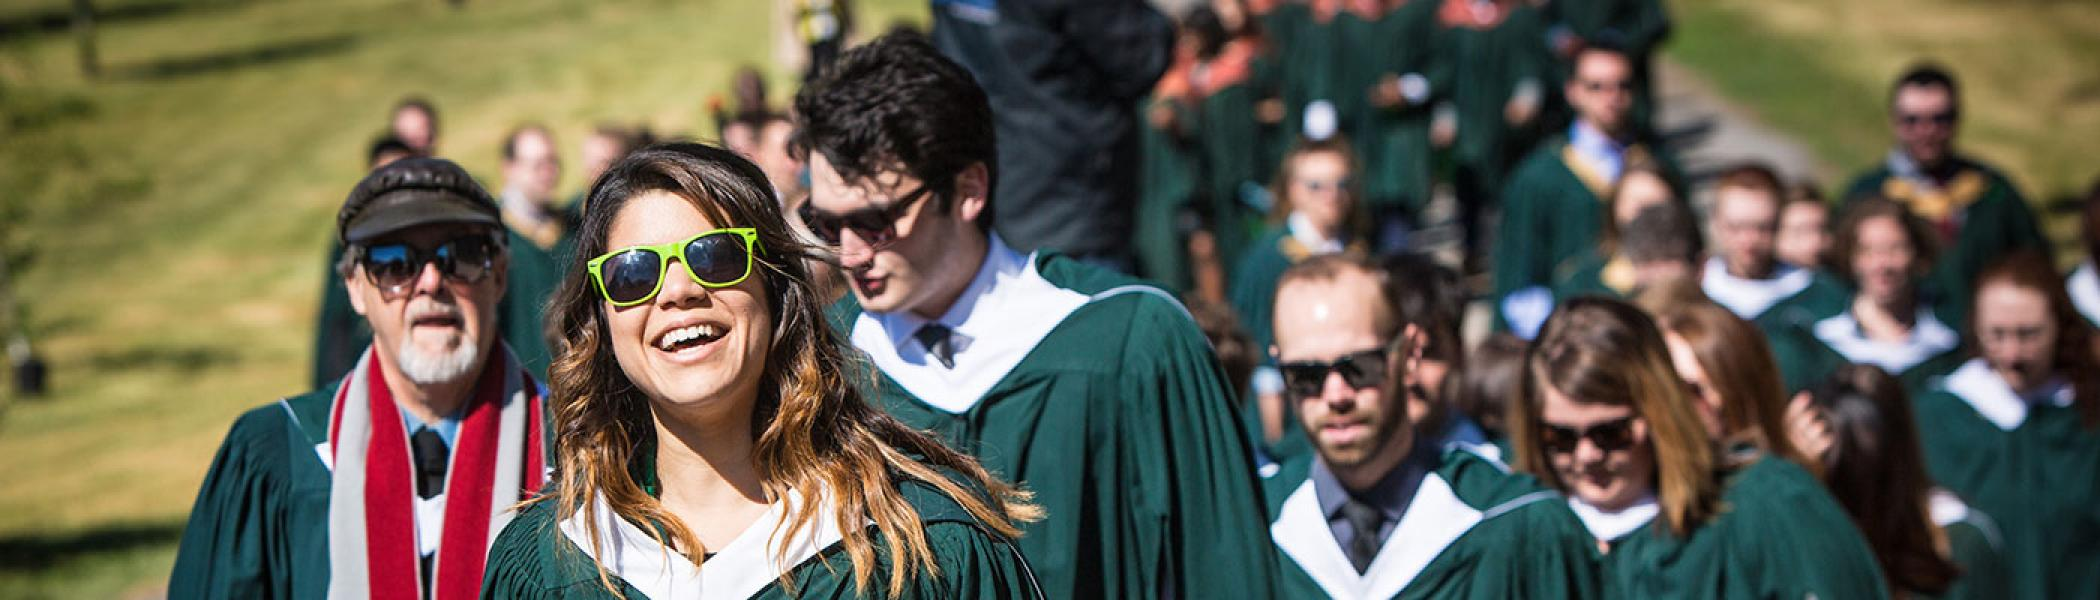 A female student walking across the Bata law in a long line of students, smiling, in her convocation gown on a sunny afternoon